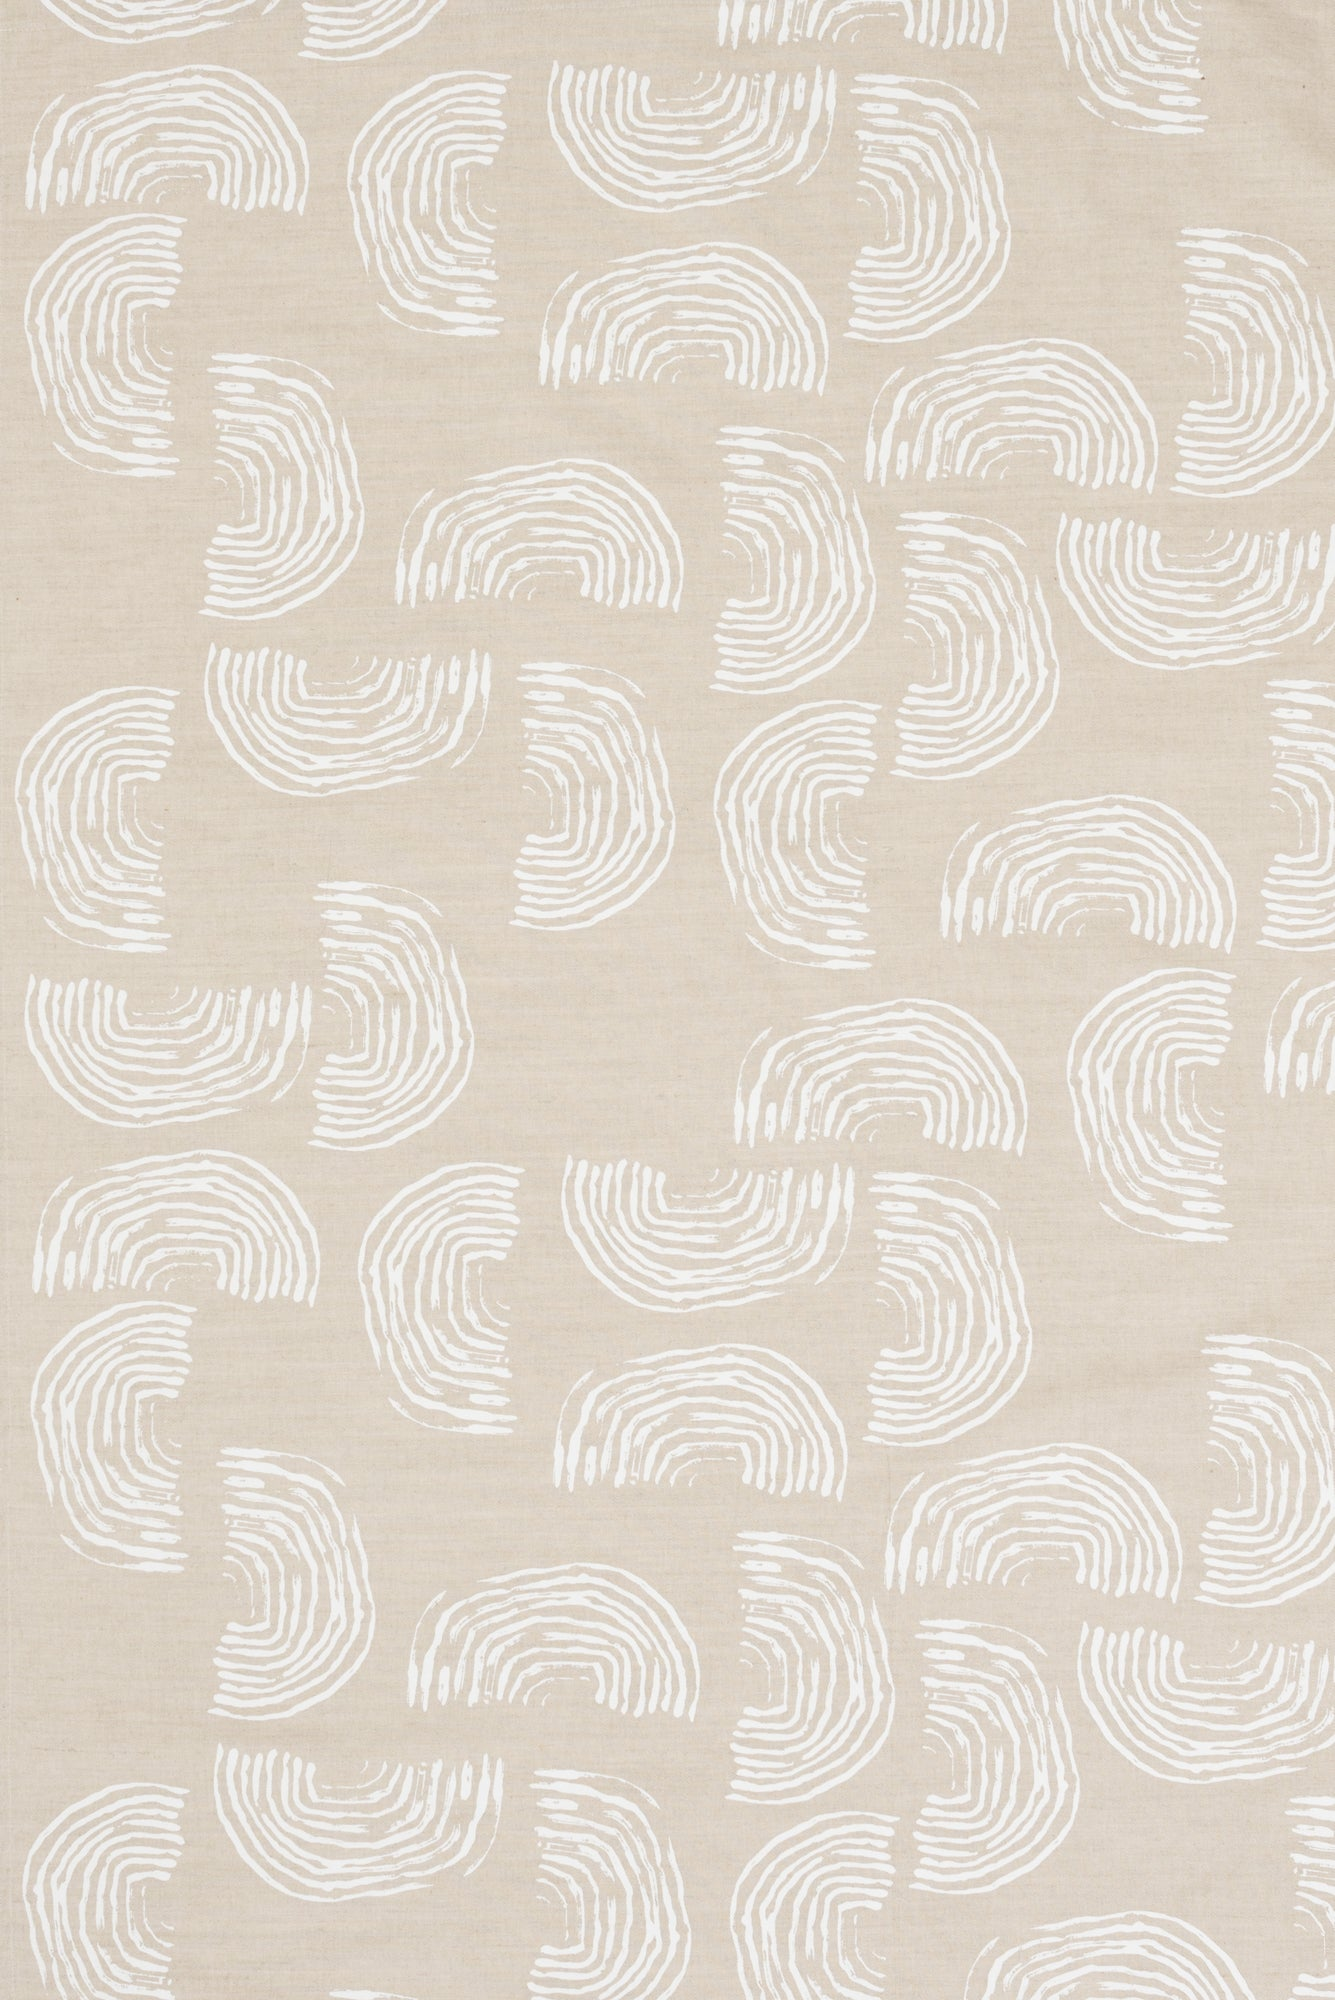 Squiggles White - Fabric By The Yard